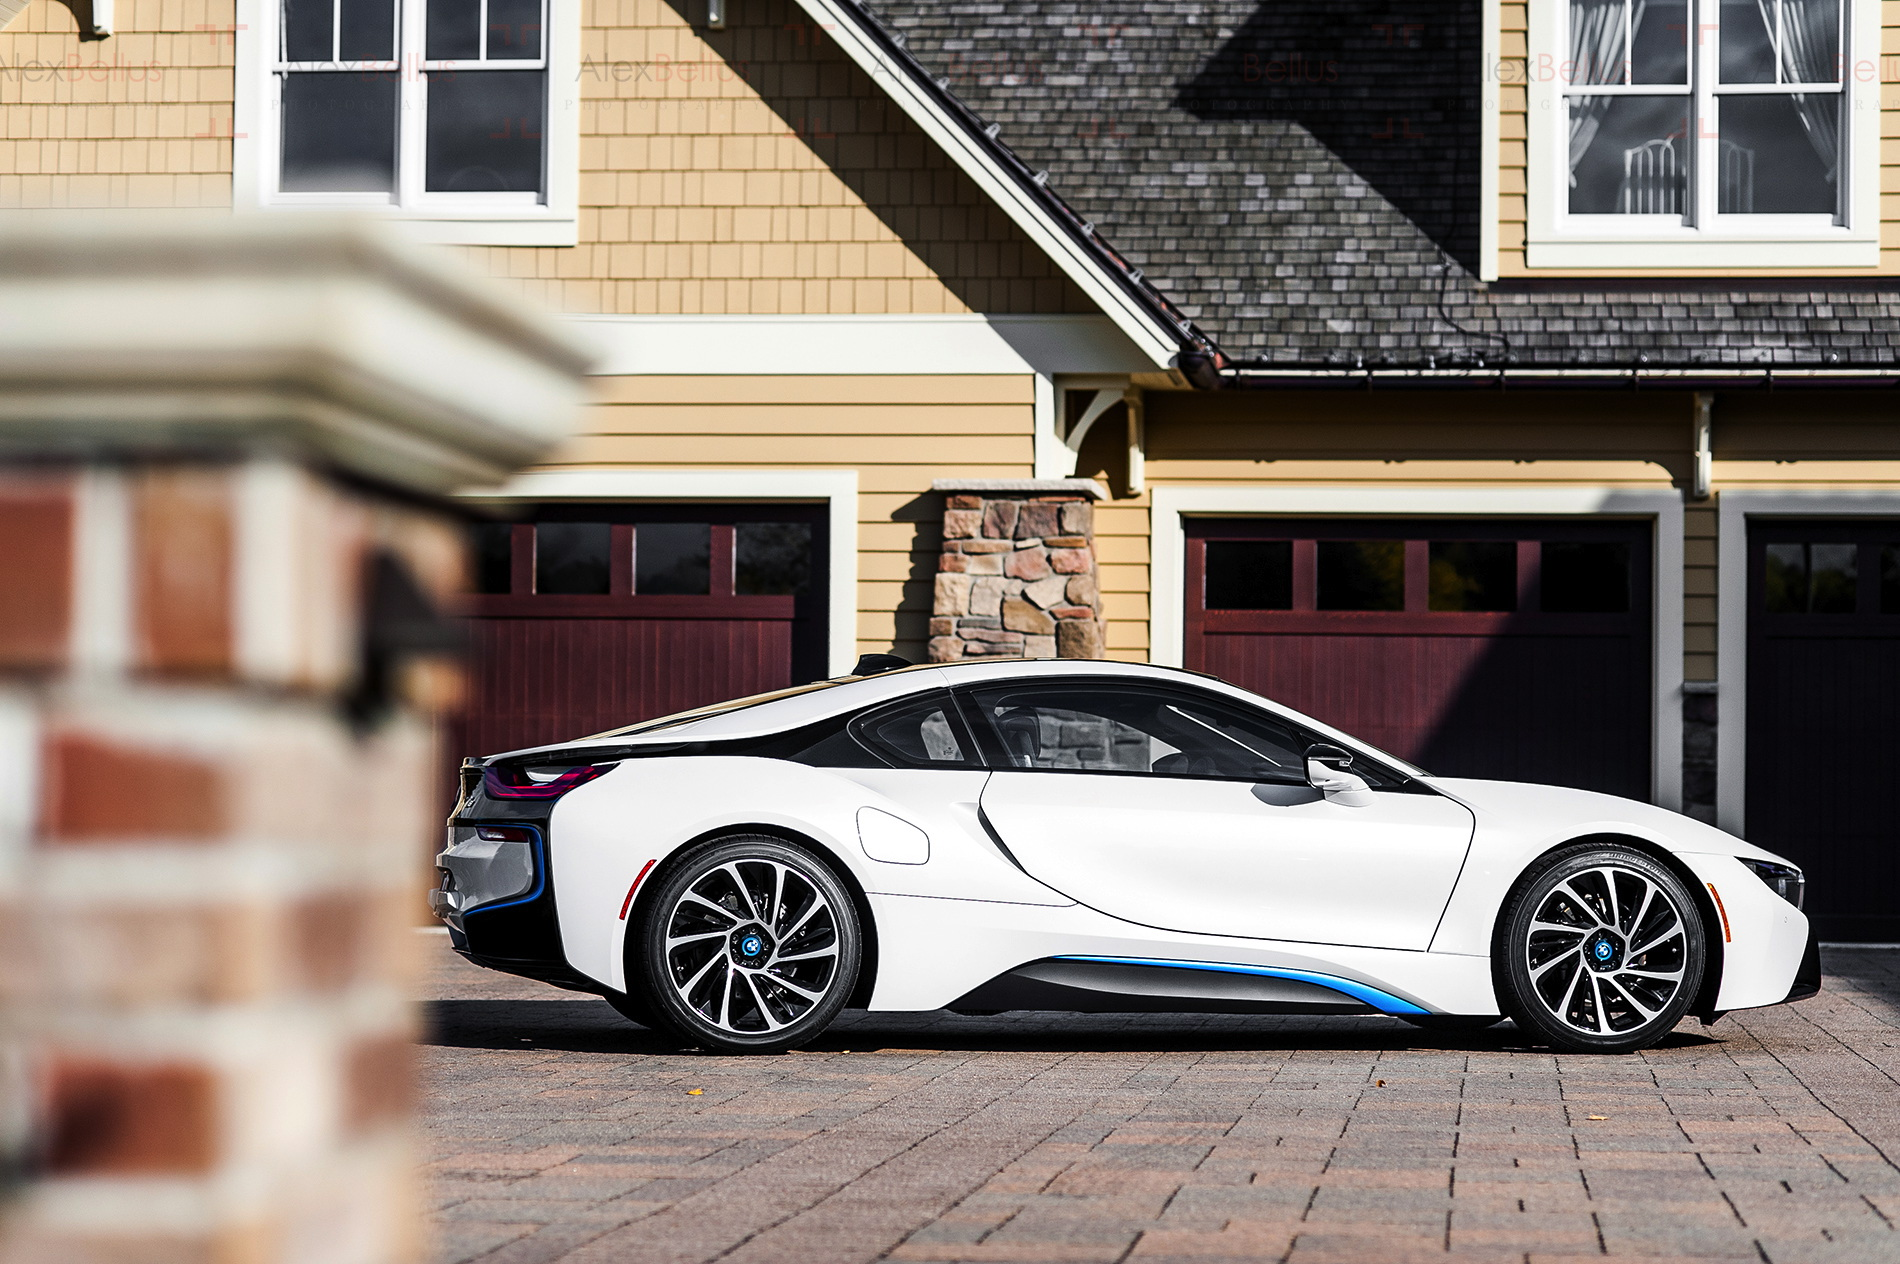 Bmw I Hd Wallpapers Backgrounds Wallpaper Abyss Bmw Bmw I8 Wallpaper White 1900x1264 Wallpaper Teahub Io